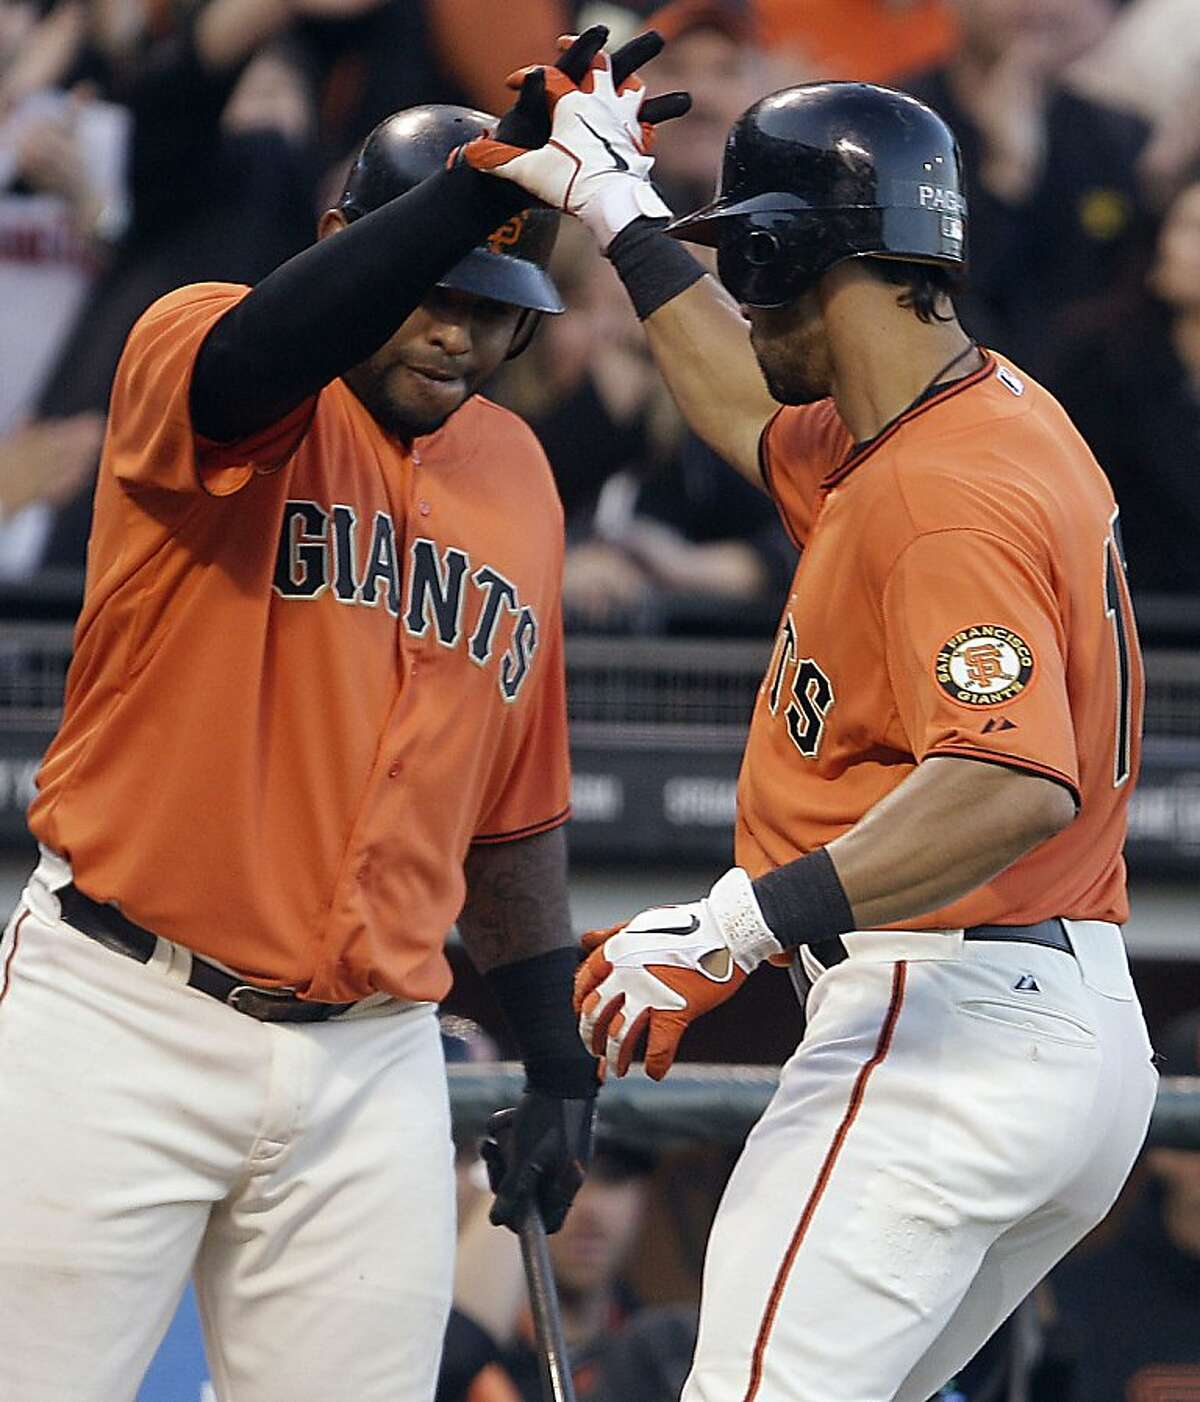 San Francisco Giants' Angel Pagan, right, is congratulated by teammate Pablo Sandoval after hitting a home run off San Diego Padres' Cory Luebke during the first inning of a baseball game on Friday, April 27, 2012, in San Francisco.